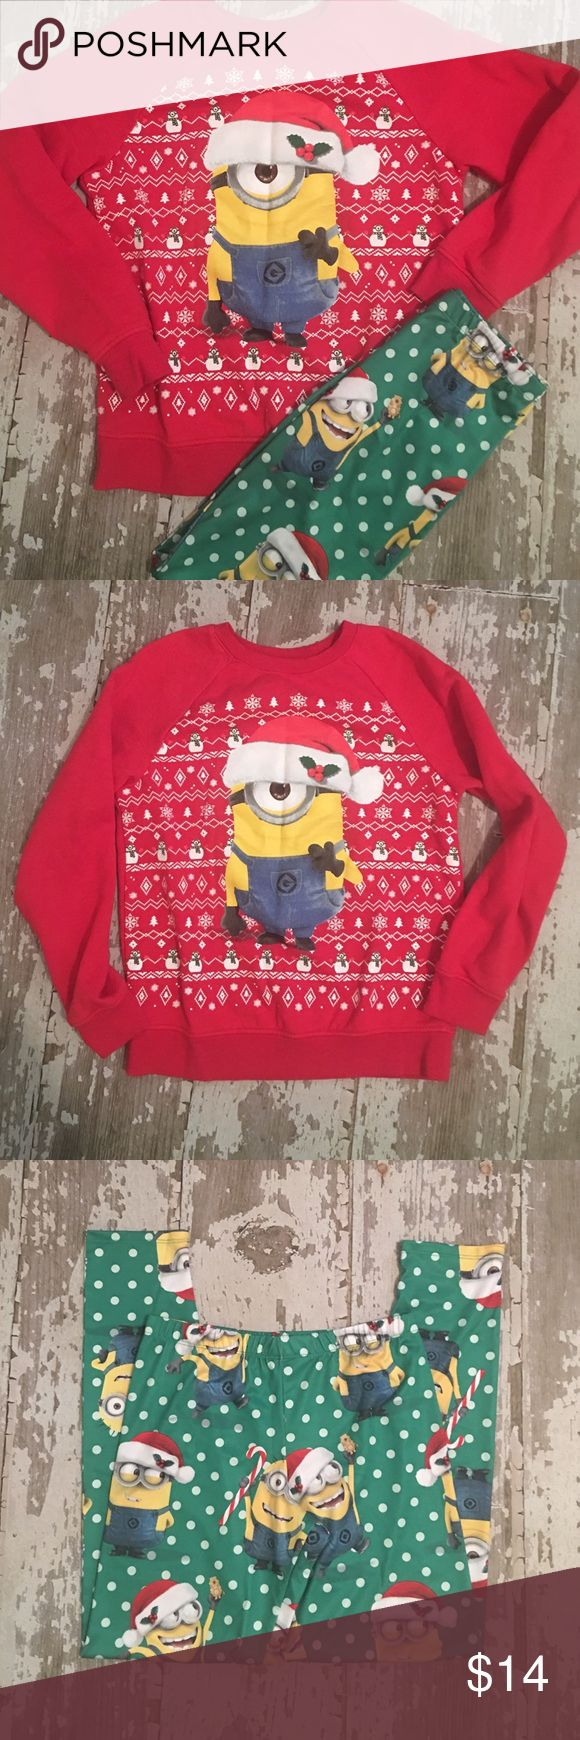 ❤️🎄Despicable ME (Minion Outfit) Girls Large XL Girls Minion Outfit! Perfect for an Ugly Sweater Party or a School Christmas Party!🎄🎁 Worn one time. Excellent Condition. Sweater is size Large & Leggings are XL (Youth). 🎄🎁 Bundle & Save More! Target Matching Sets